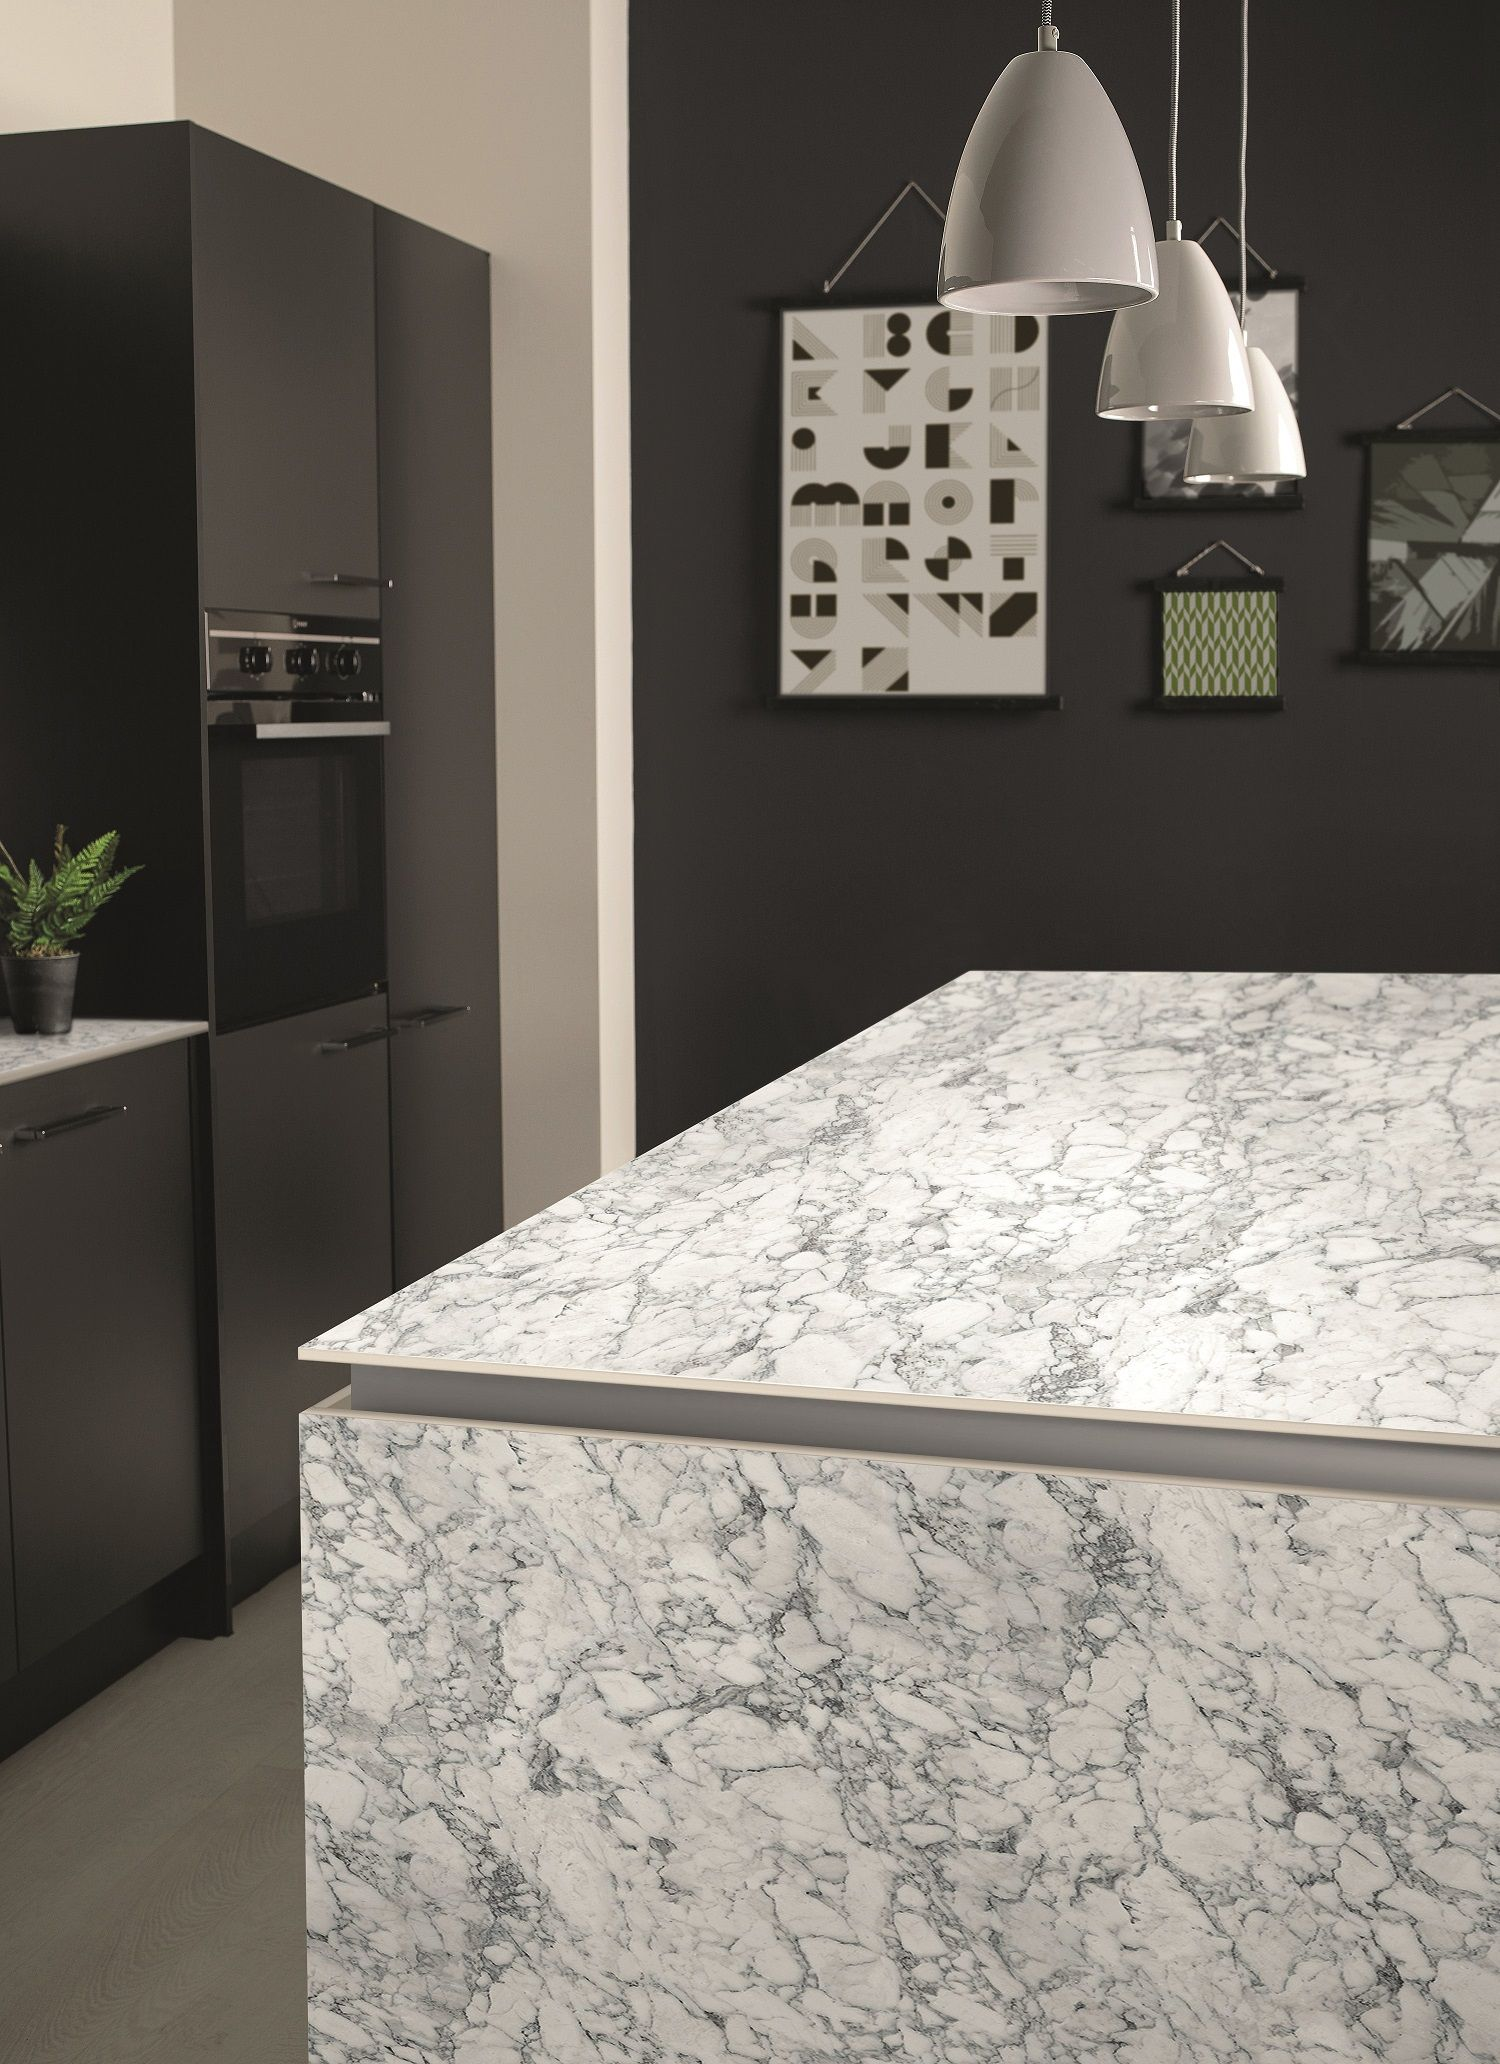 Bushboard Evolve An Ultra Slim Surface For Every Kitchen Kitchens Review Laminate Worktop Interior Modern Kitchen Island